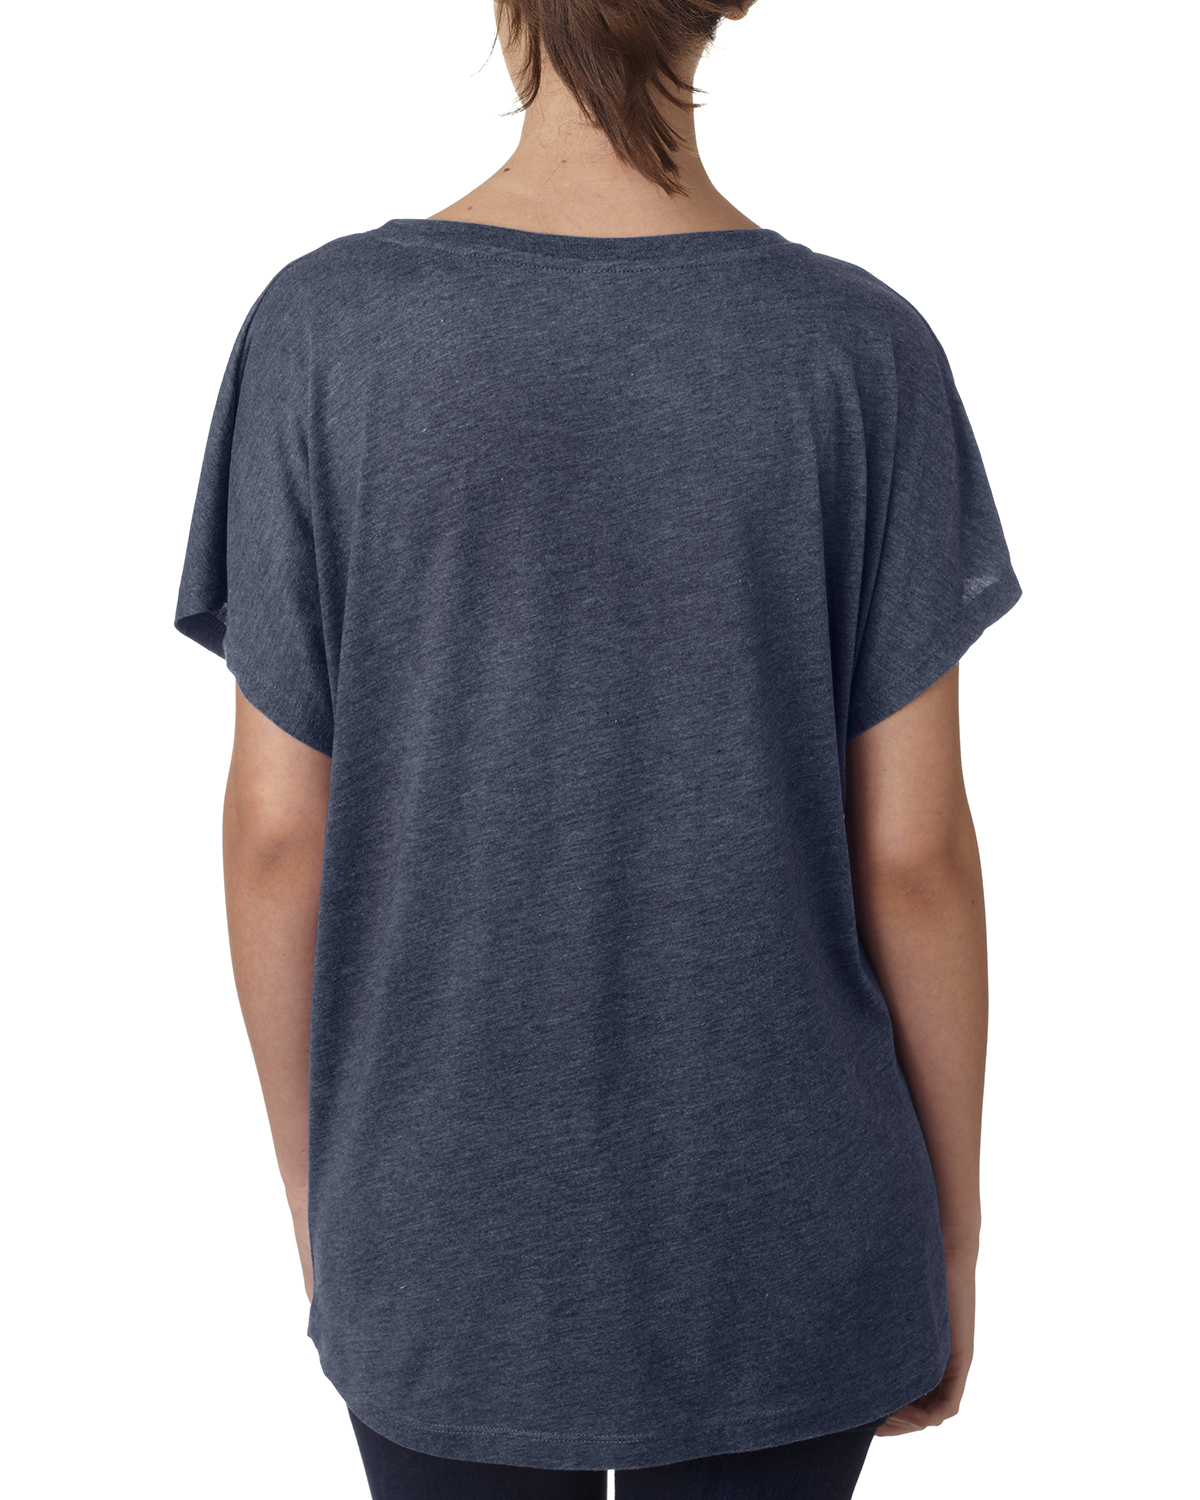 NEW-Next-Level-Junior-Fit-Triblend-Dolman-Sleeve-Relexed-Fit-T-Shirt-B-6760 thumbnail 9